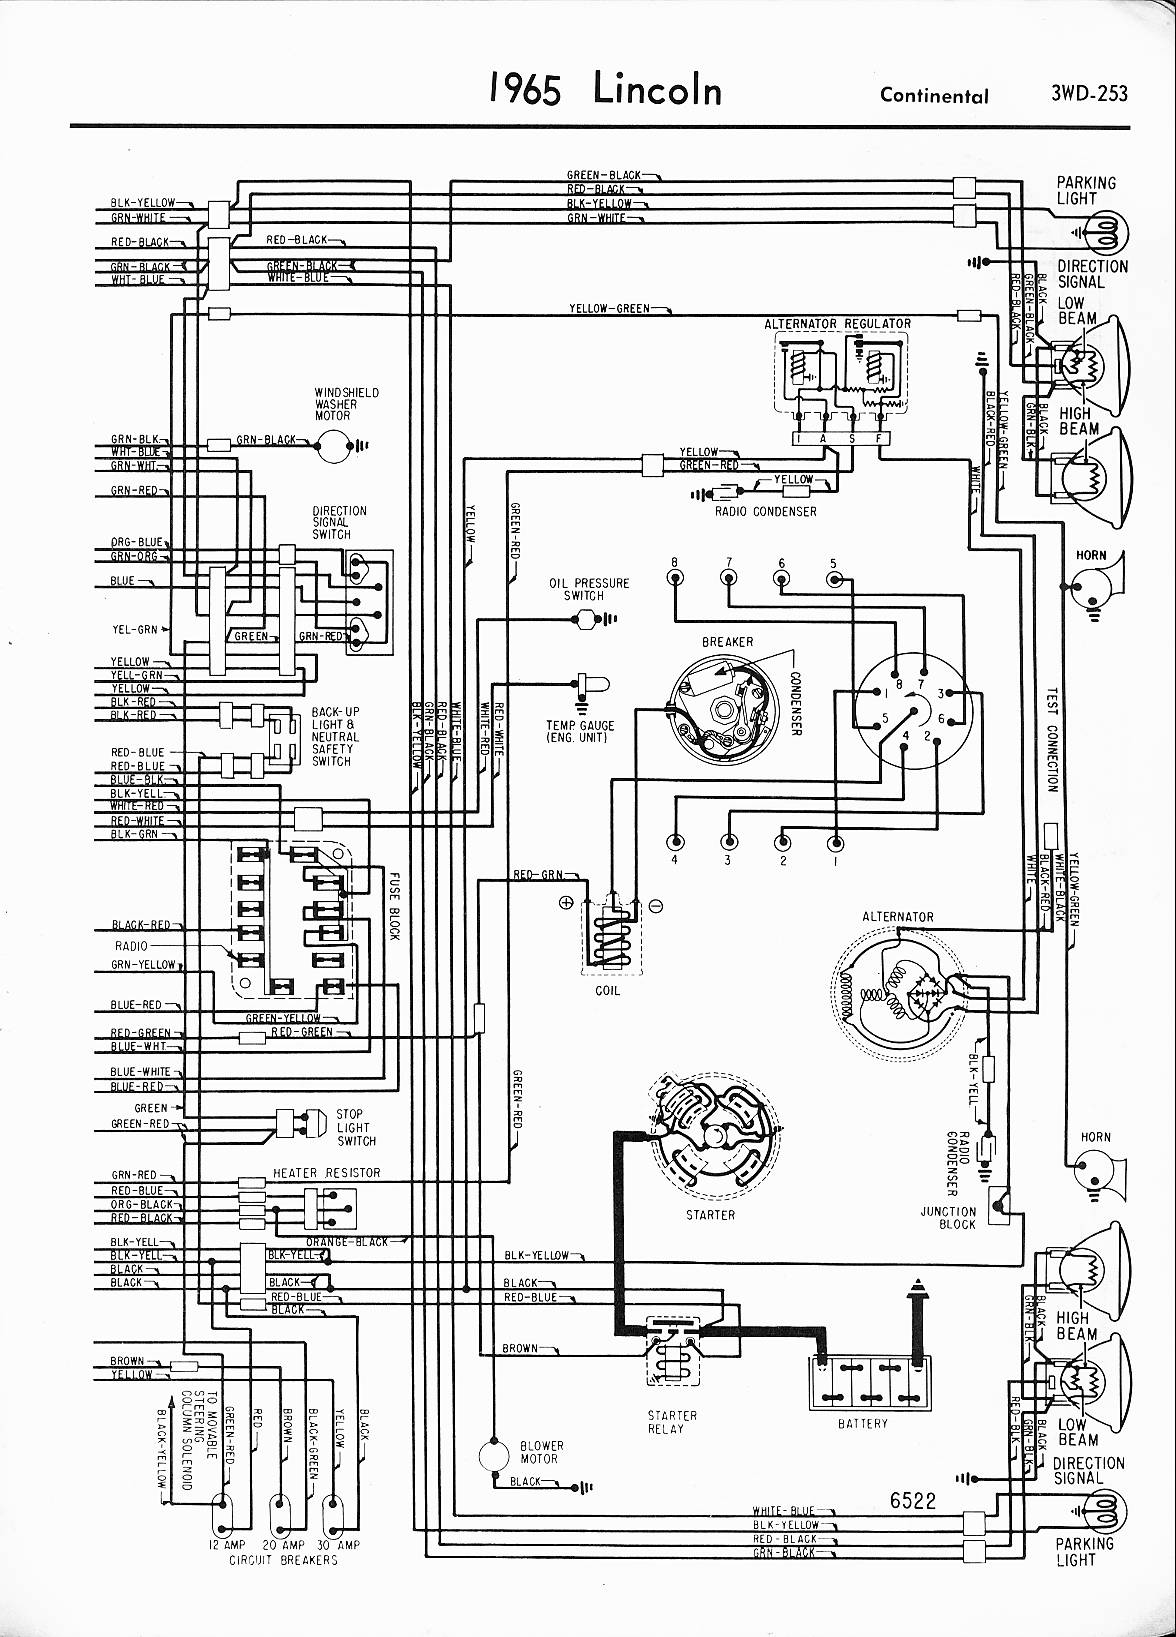 Lincoln Ranger 8 Wiring Diagram Libraries 92 454 Diagrams Third Levellincoln 1957 1965 Air Suspension